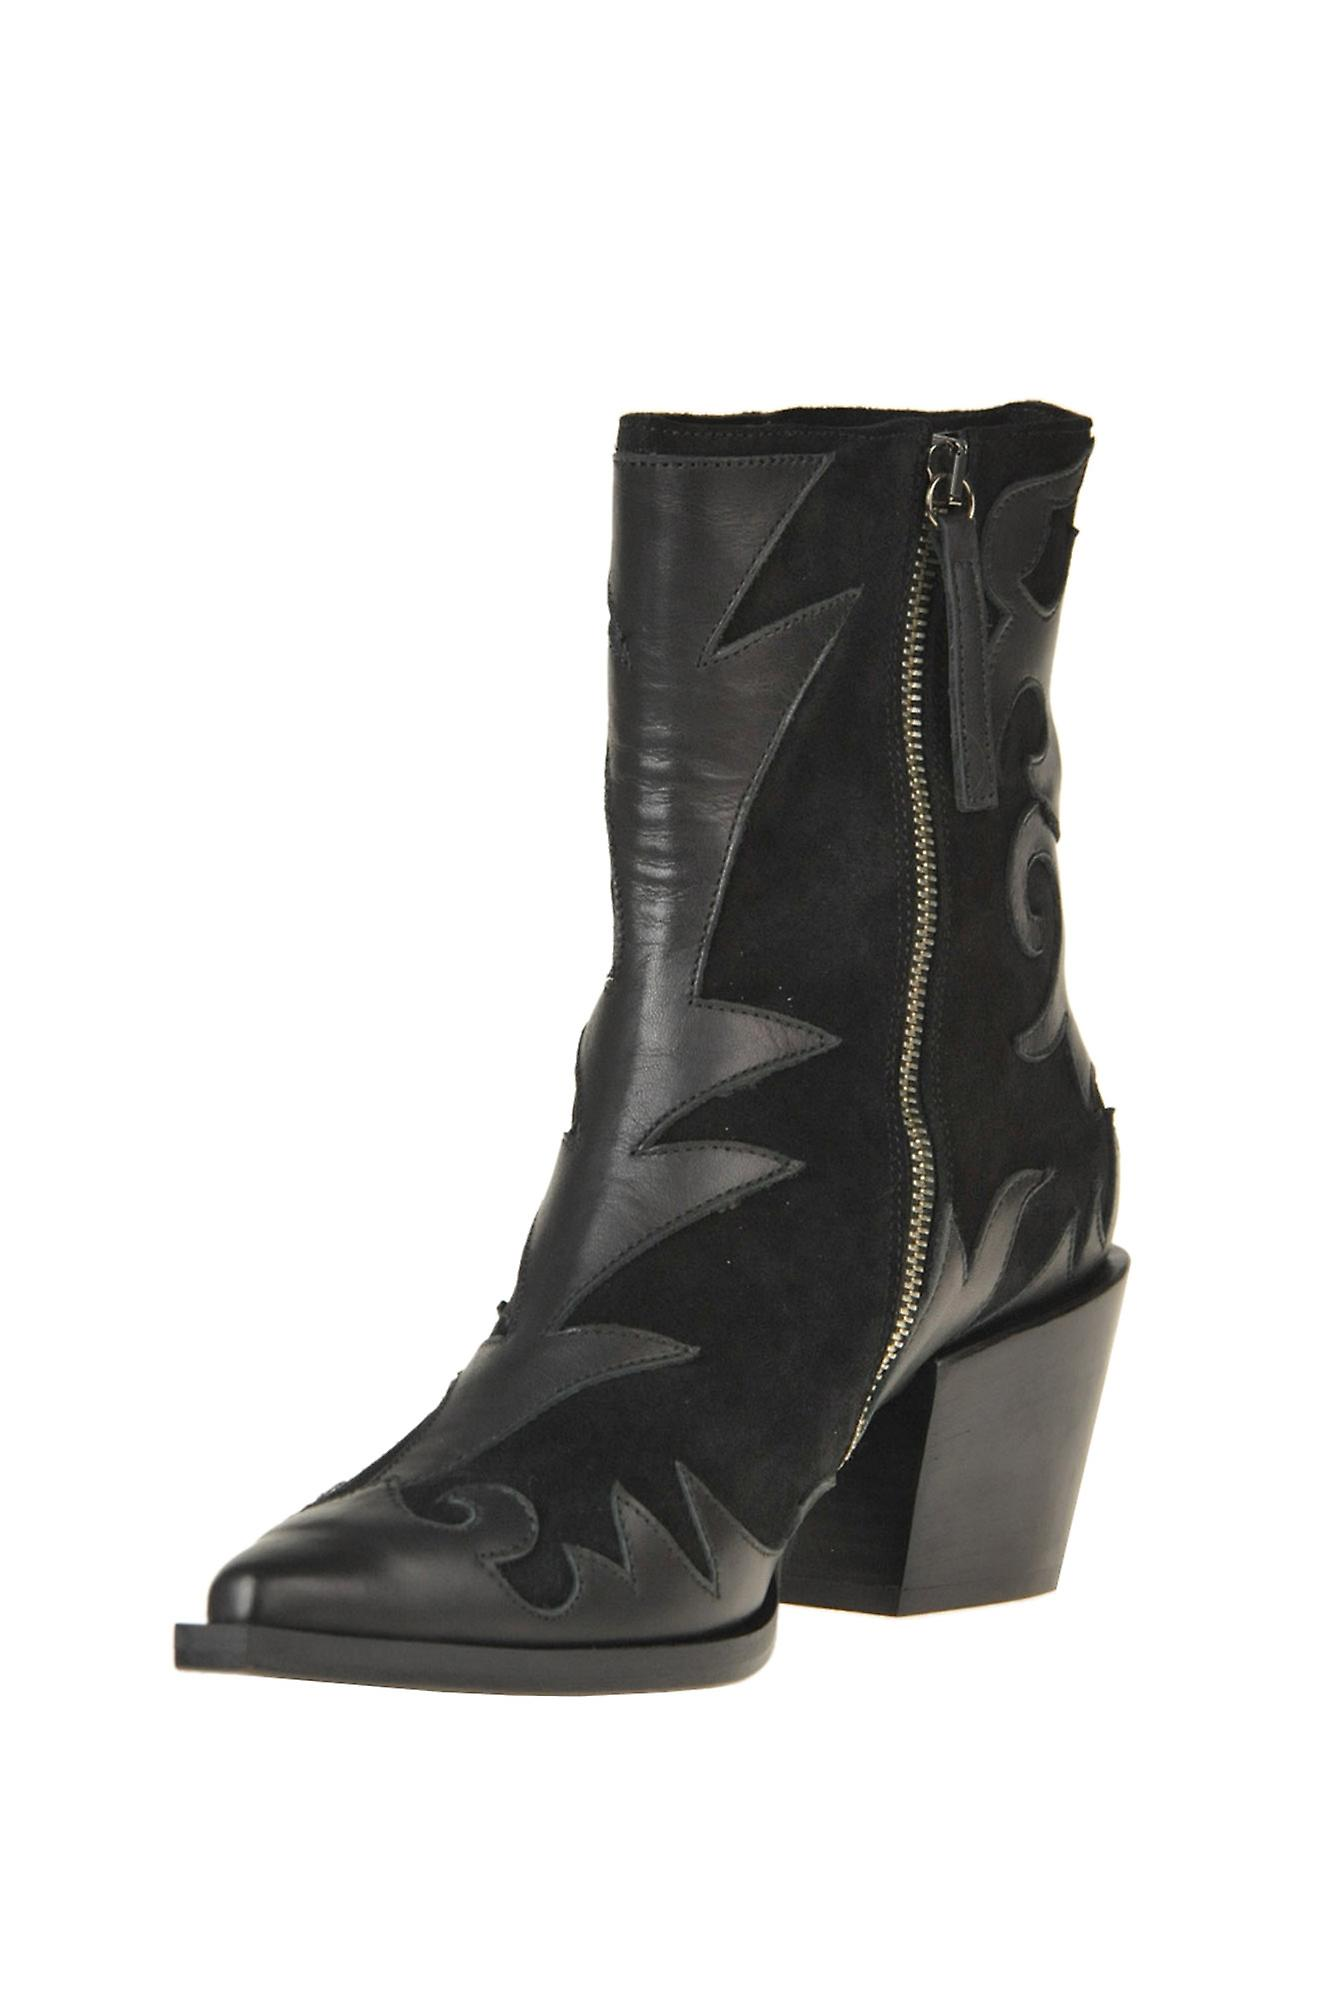 Myaclara Ezgl520001 Women's Black Leather Ankle Boots